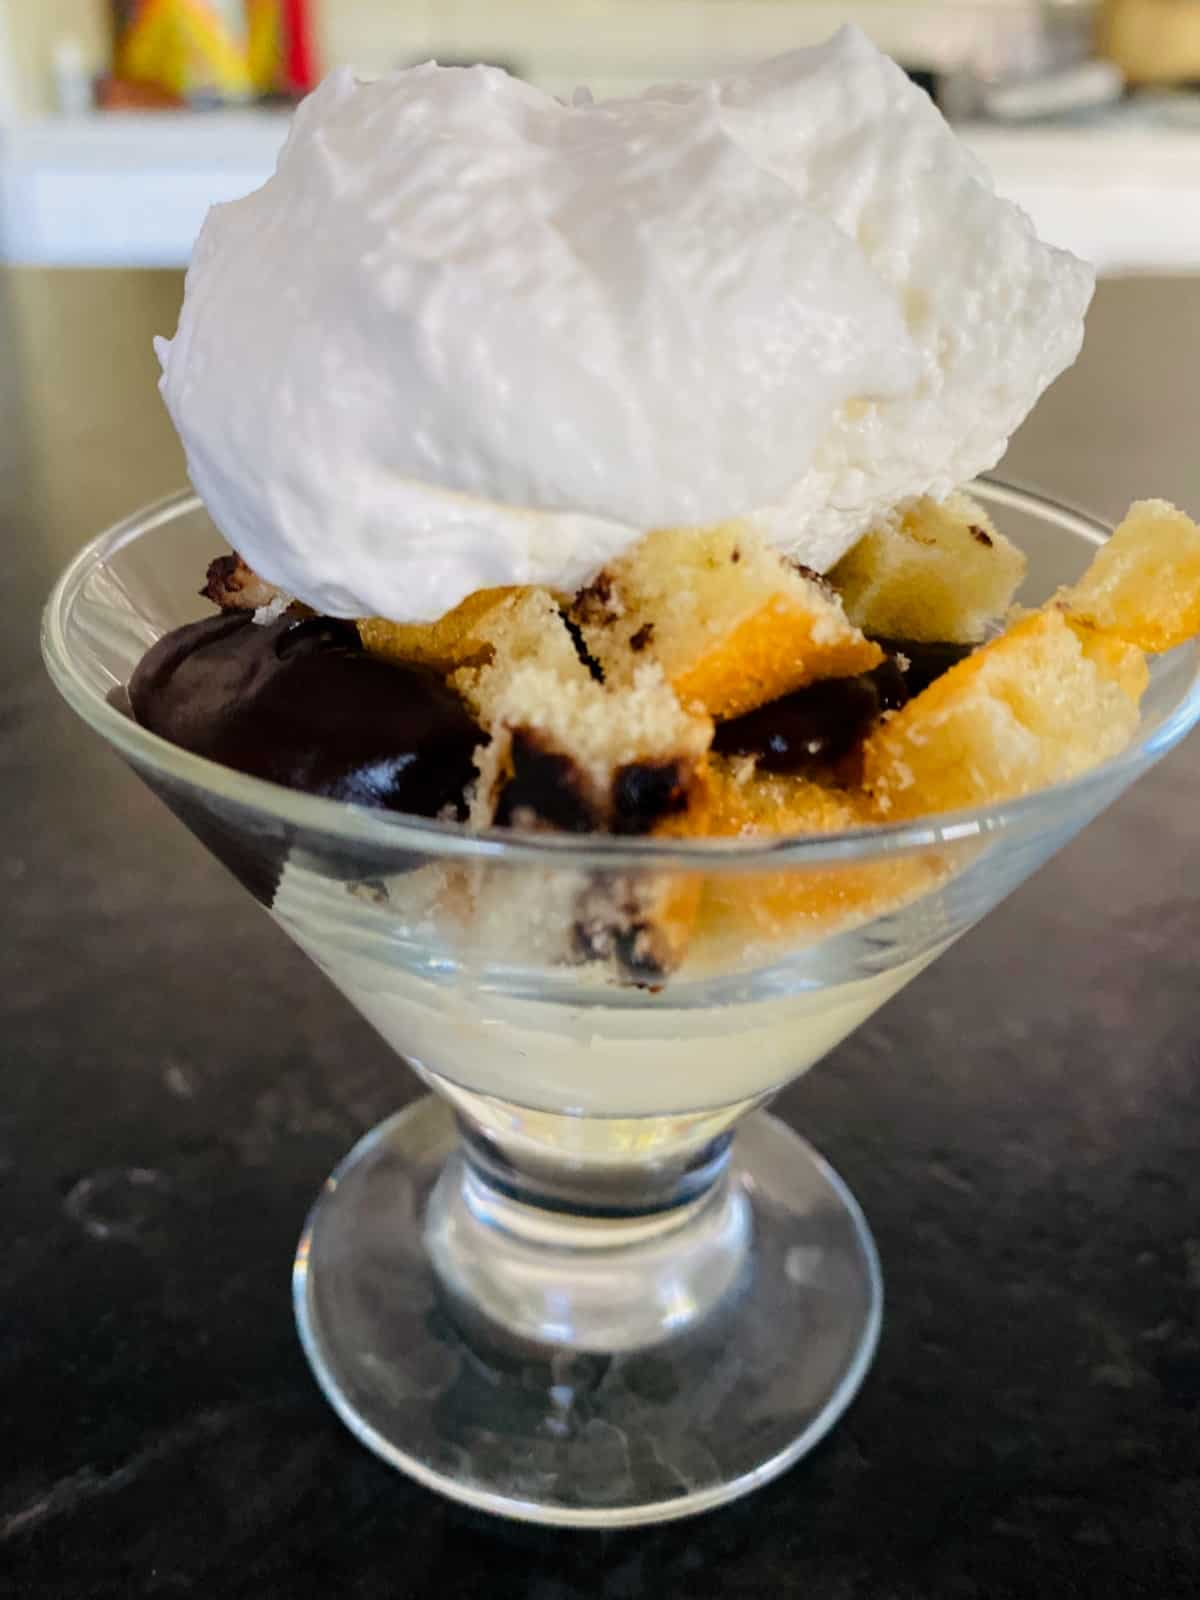 Stemmed dessert glass trifle with vanilla pudding, chocolate pudding, VitaTops muffin pieces and whipped topping on black countertop.